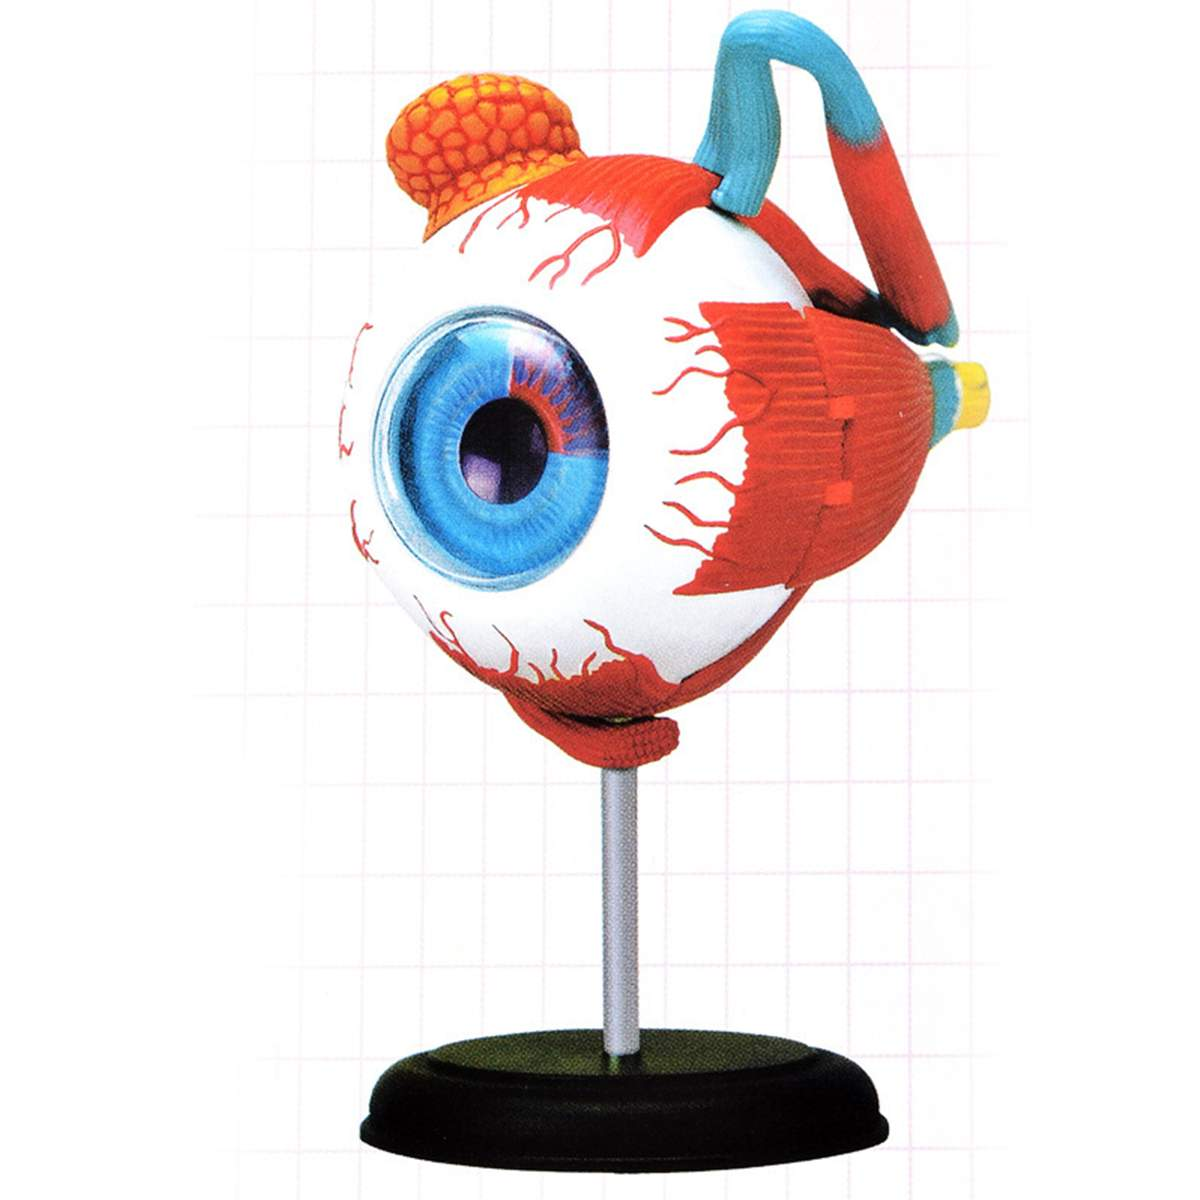 4D Anatomical Human Eyes Model Anatomy Medical Science Eye Ball Model School Educational Human Eyes Teaching Accessory Part New